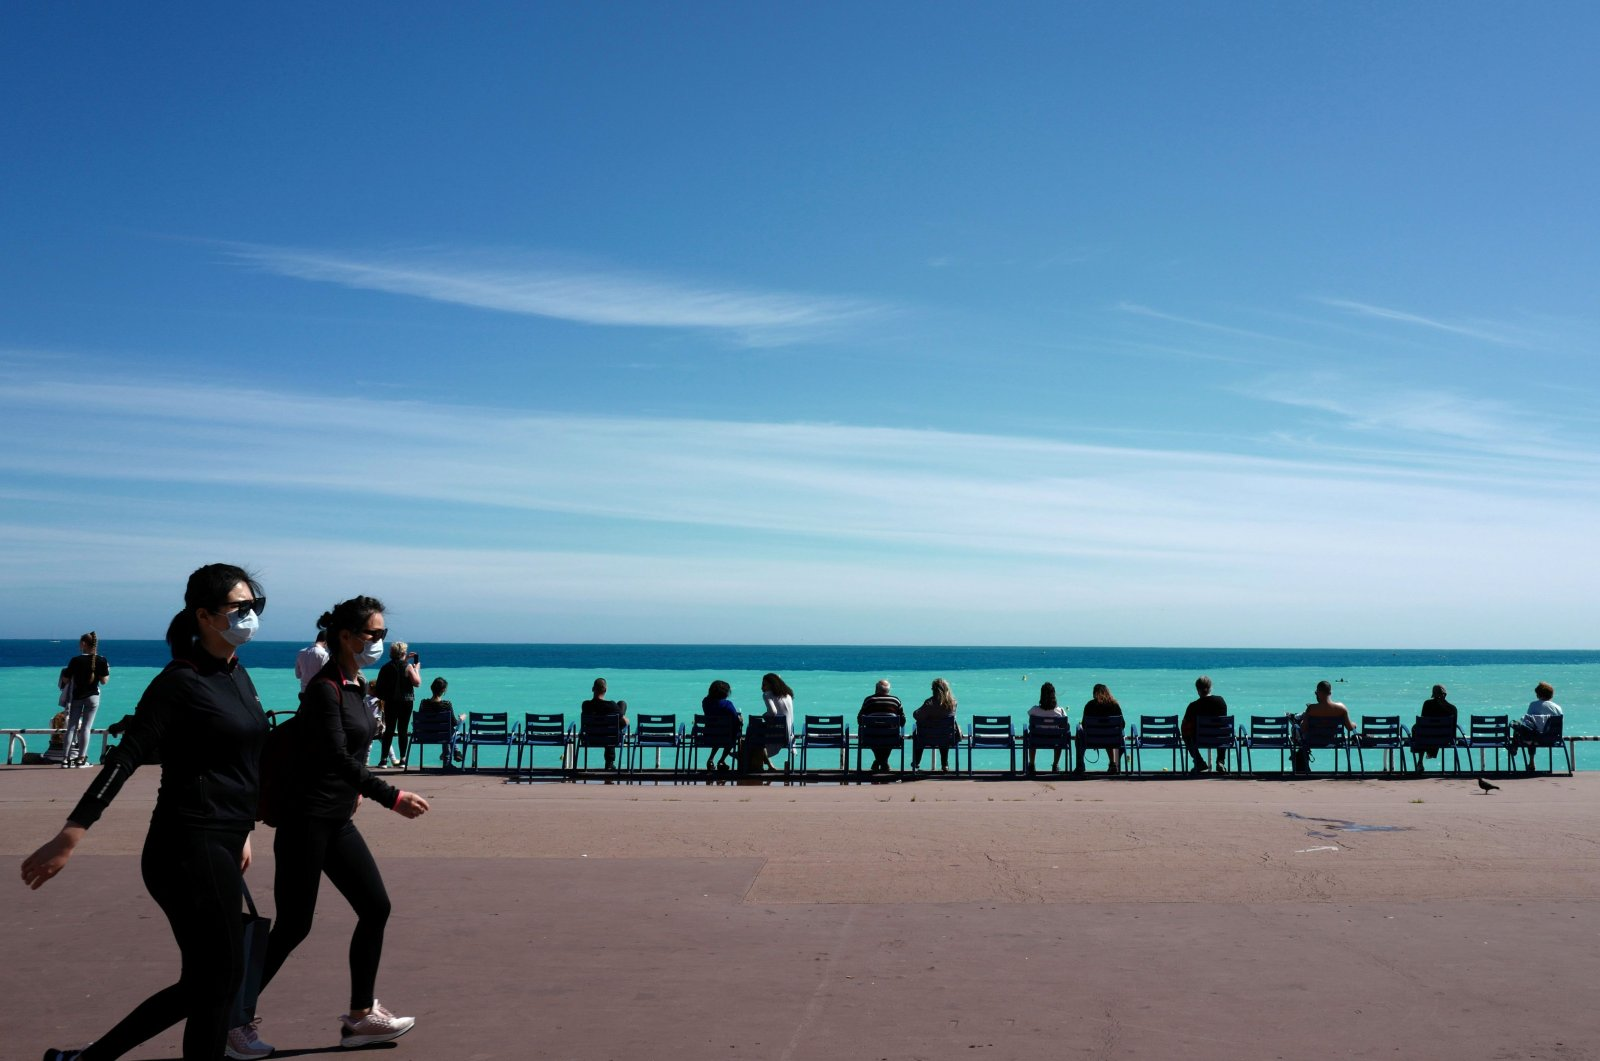 """People wearing protective facemasks walk on the """"Promenade des Anglais"""", in the French Riviera city of Nice, southern France, on May 12, 2020 on second days after France eased lockdown measures taken to curb the spread of the COVID-19. (AFP Photo)"""